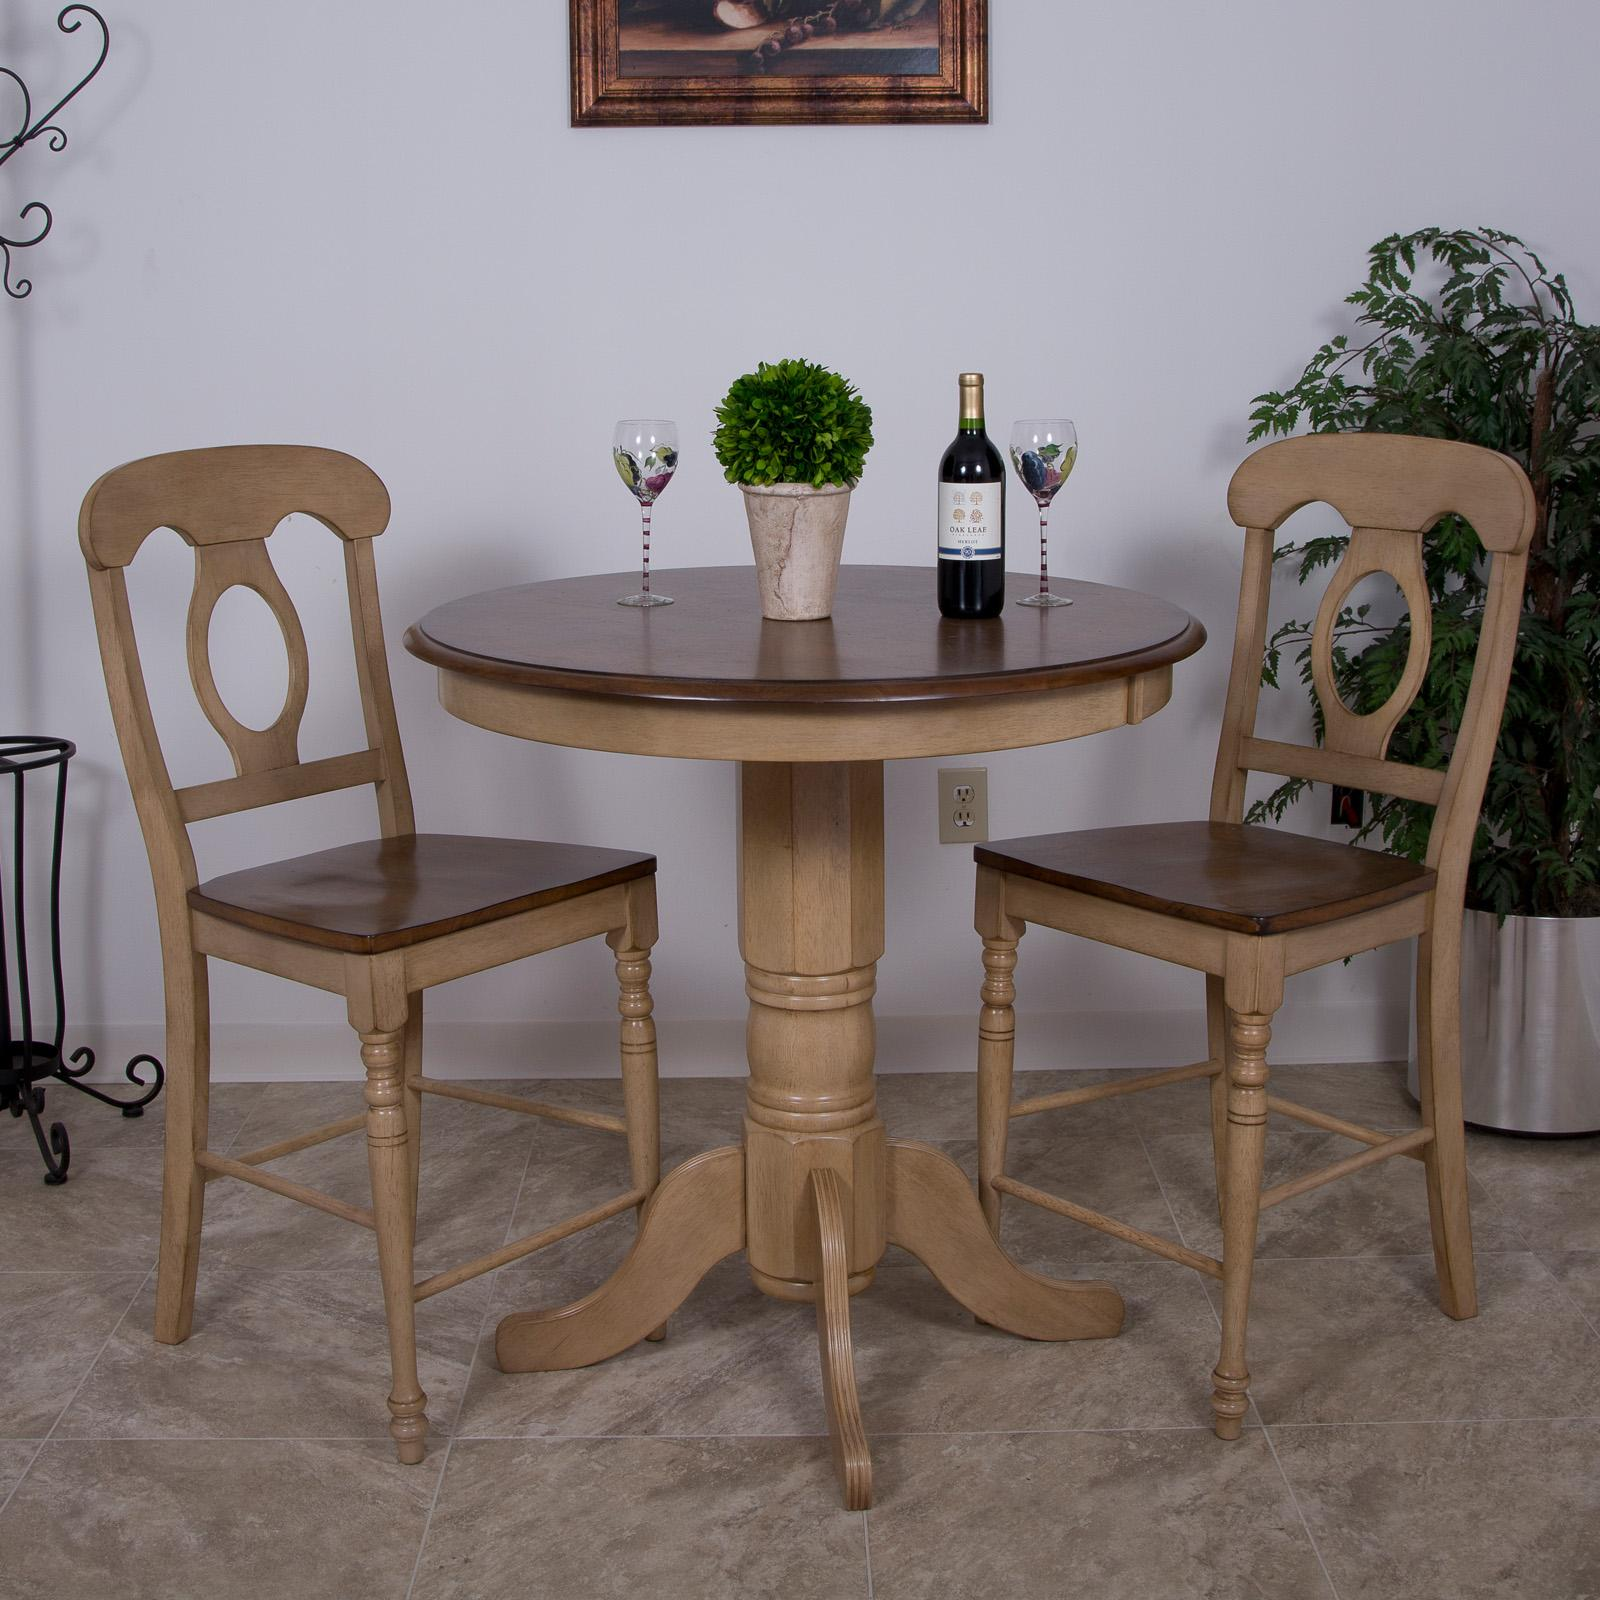 Details About Sunset Trading 3 Piece Brook 36 In Round Pub Dining Table Set With Napoleon